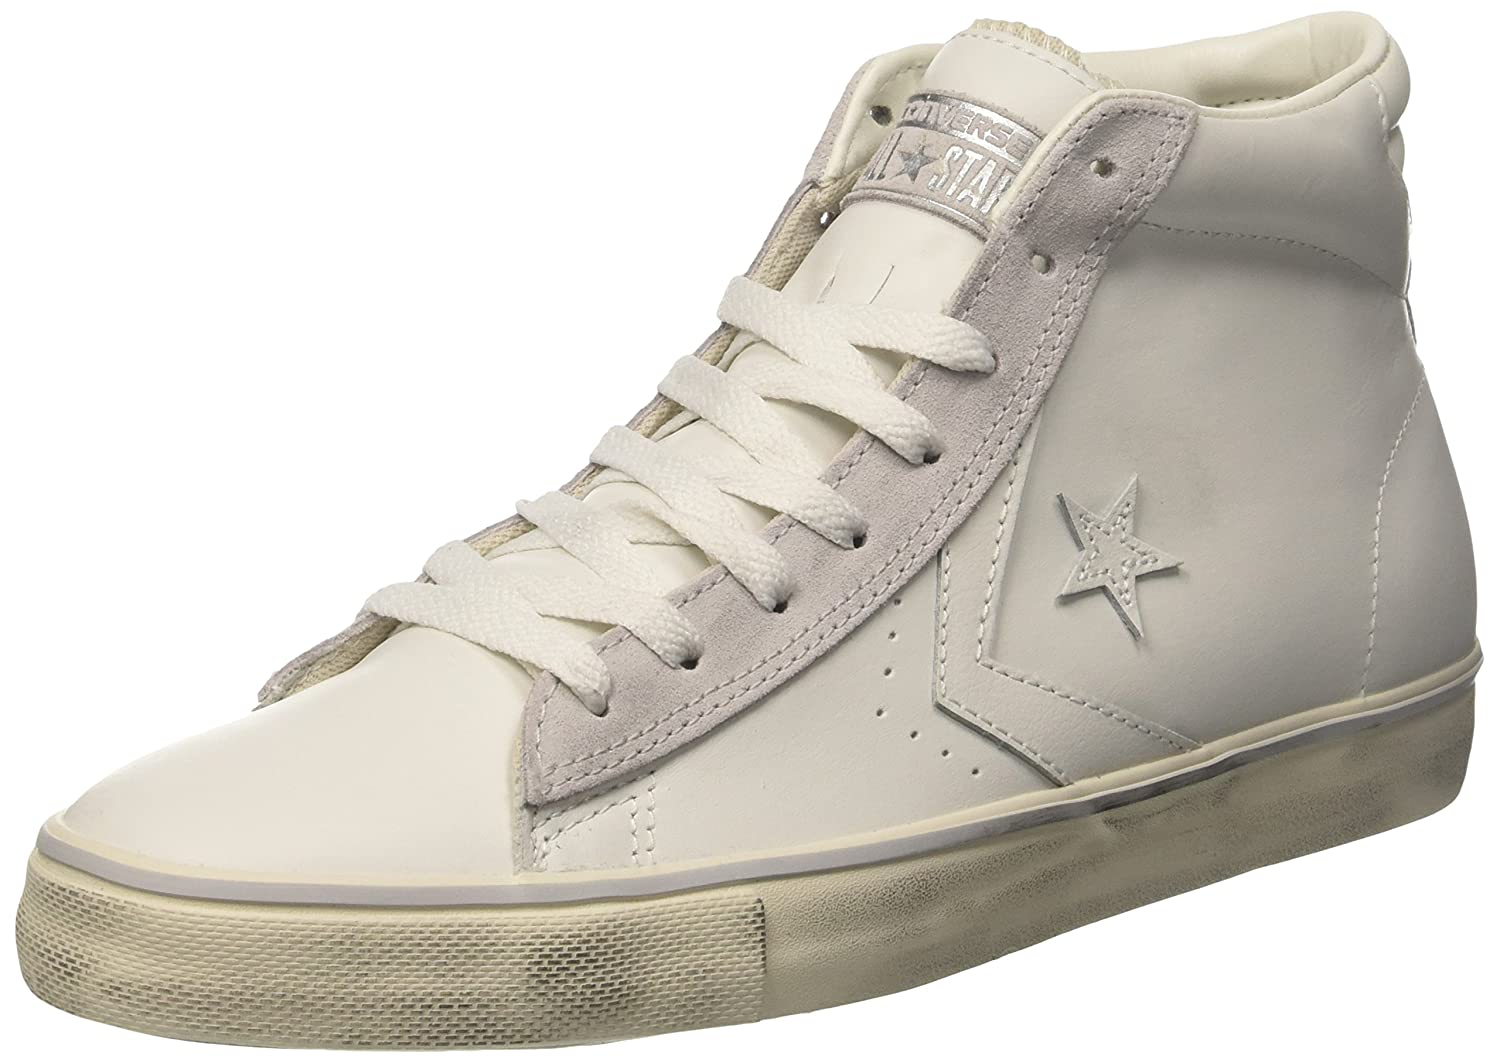 Converse Herren Pro Leather Mid Sneakers Weiss Star White/Mouse/Turtledove